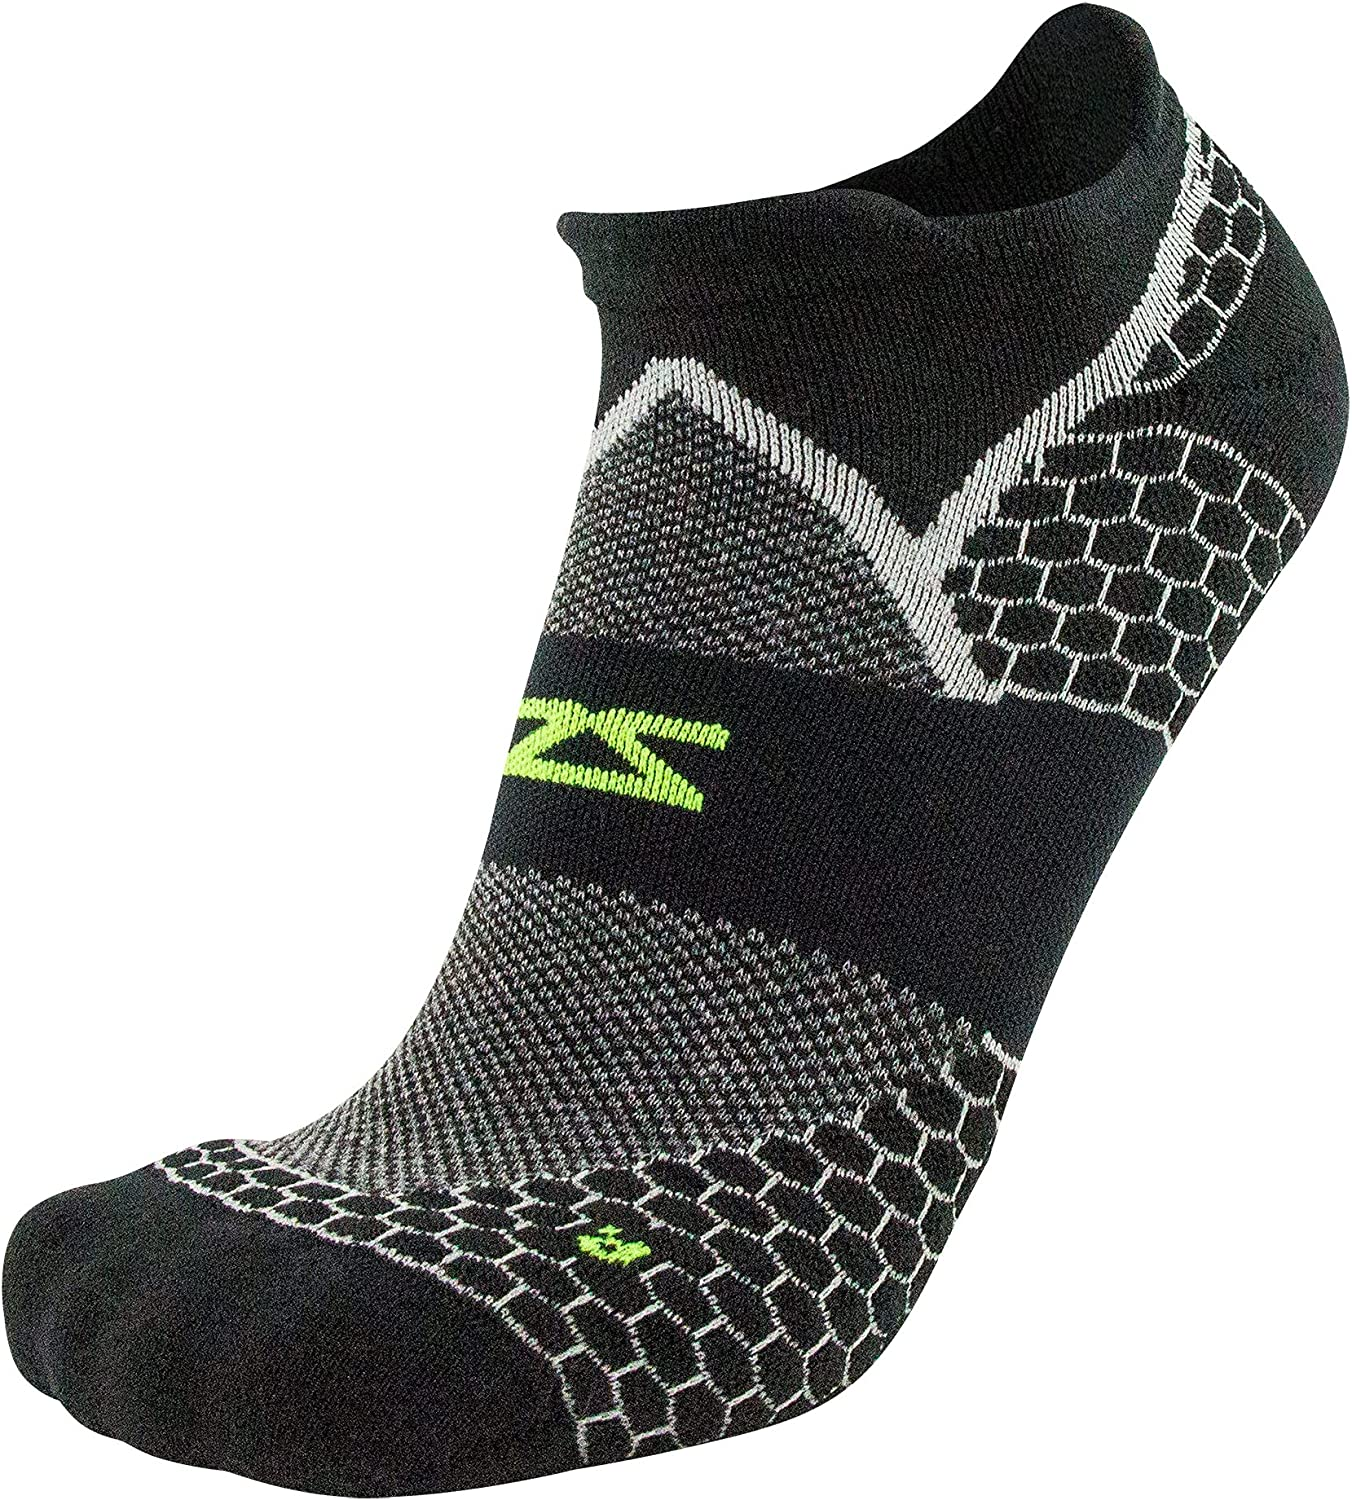 Zensah Merino Wool Running No-Show Walking Hiking Athle Our shop most popular OFFicial Socks-